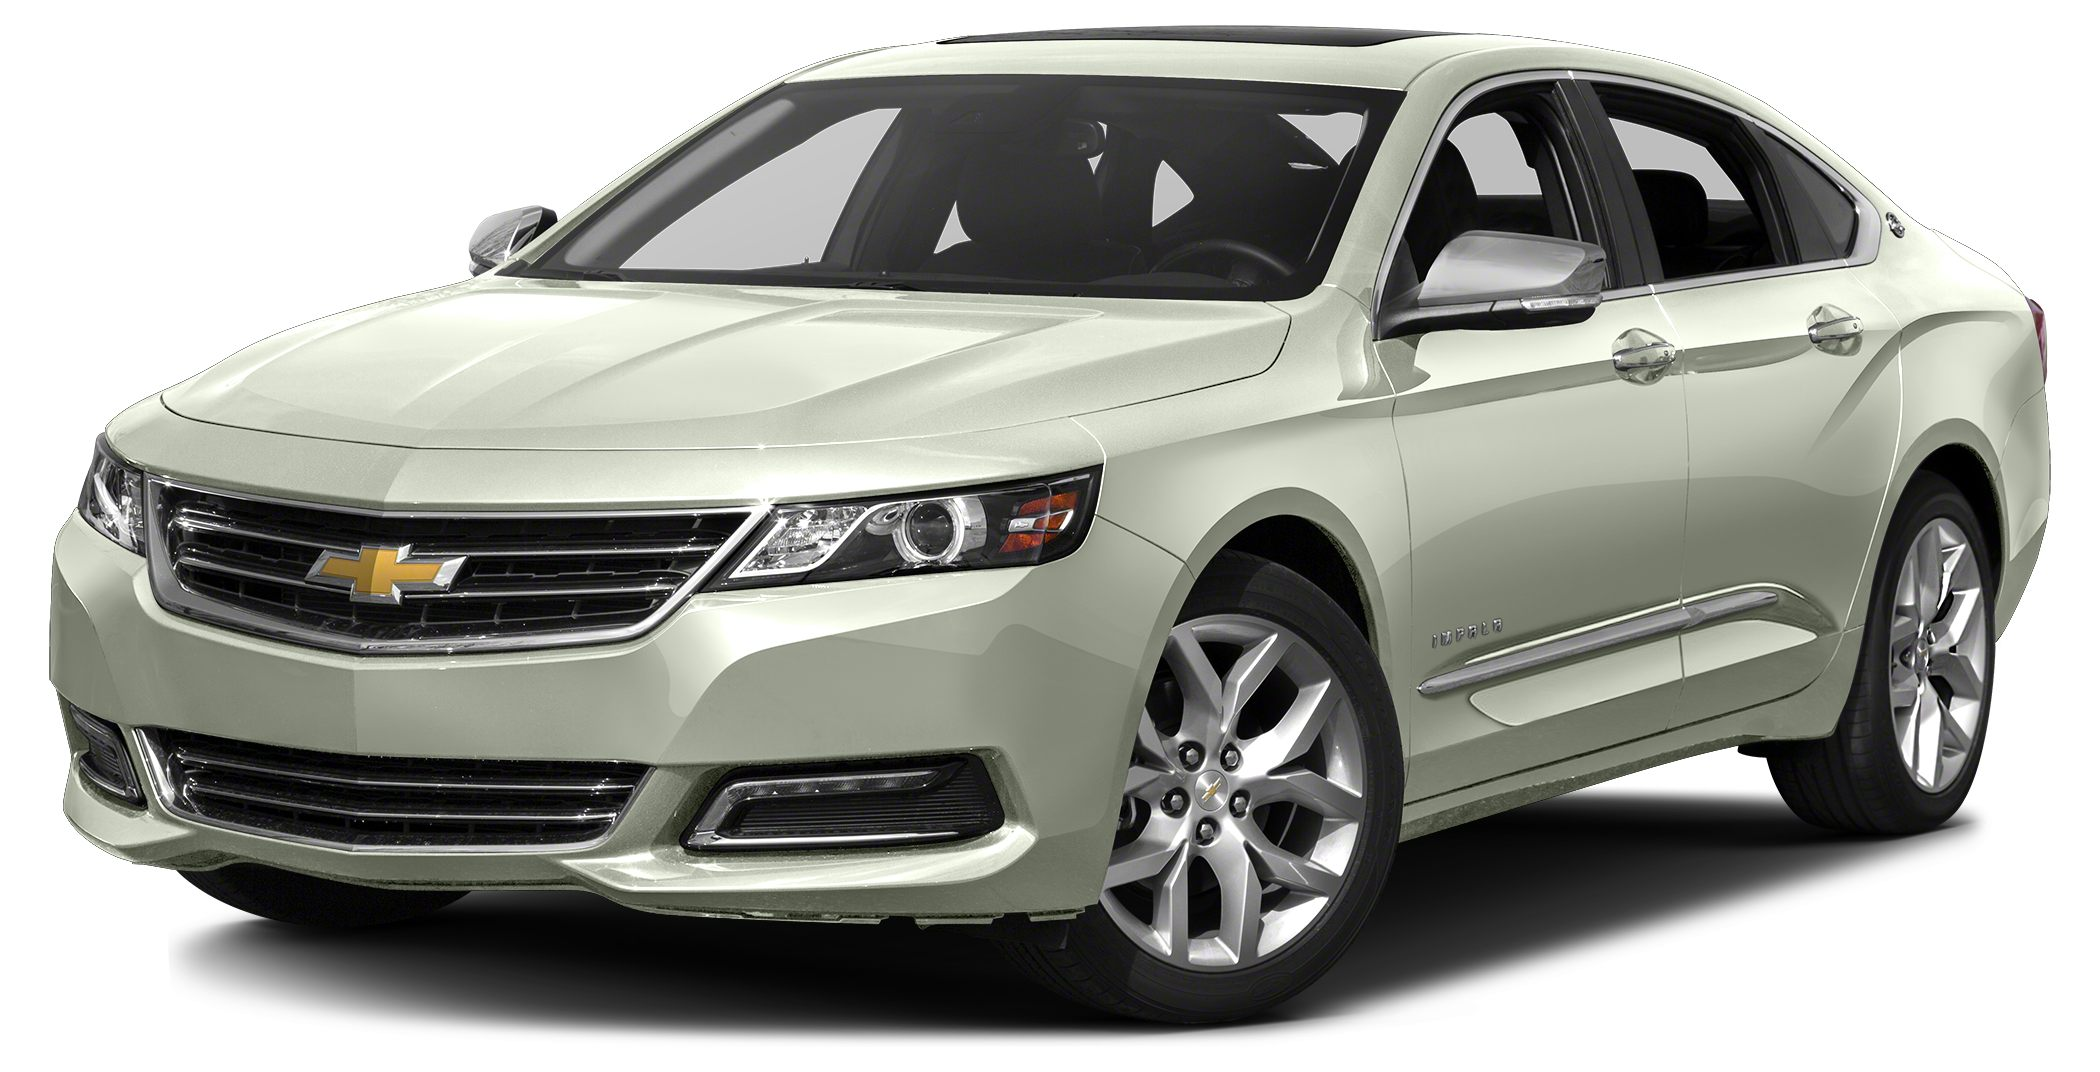 2017 Chevrolet Impala 2LZ The 2017 Chevrolet Impala has something for everyone Including a spacio